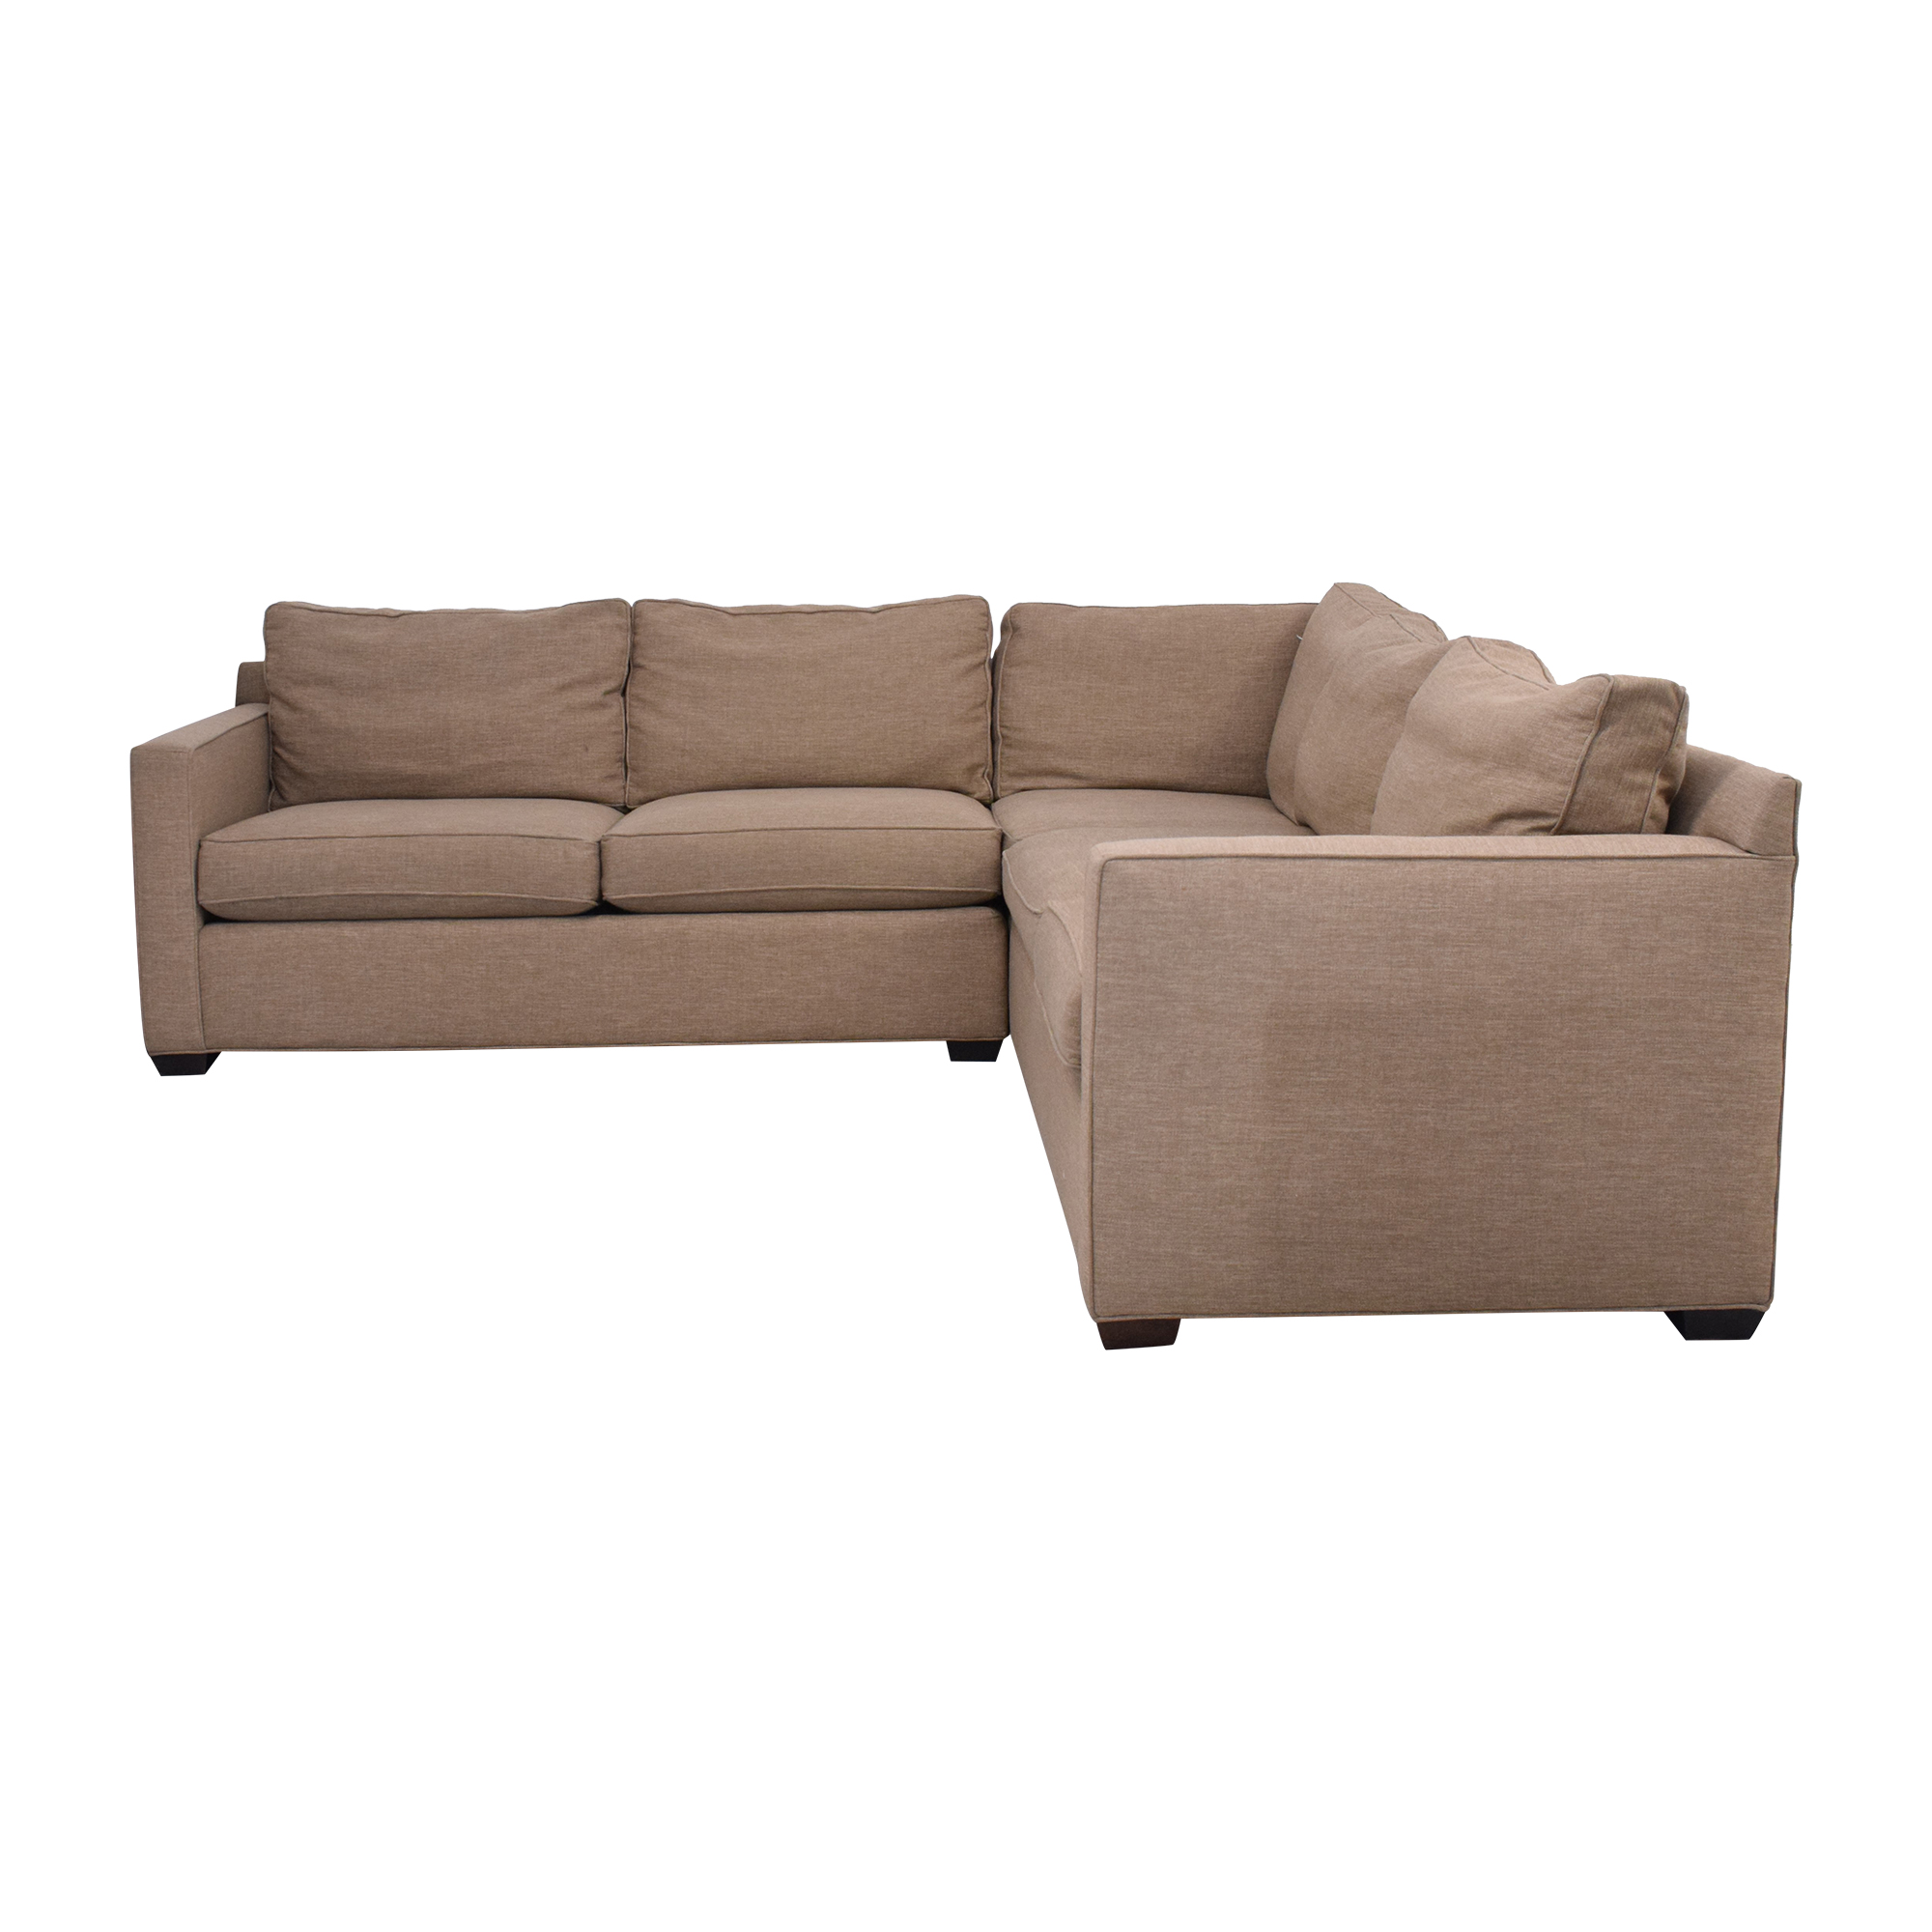 Crate & Barrel Crate & Barrel Davis Sectional Sofa for sale